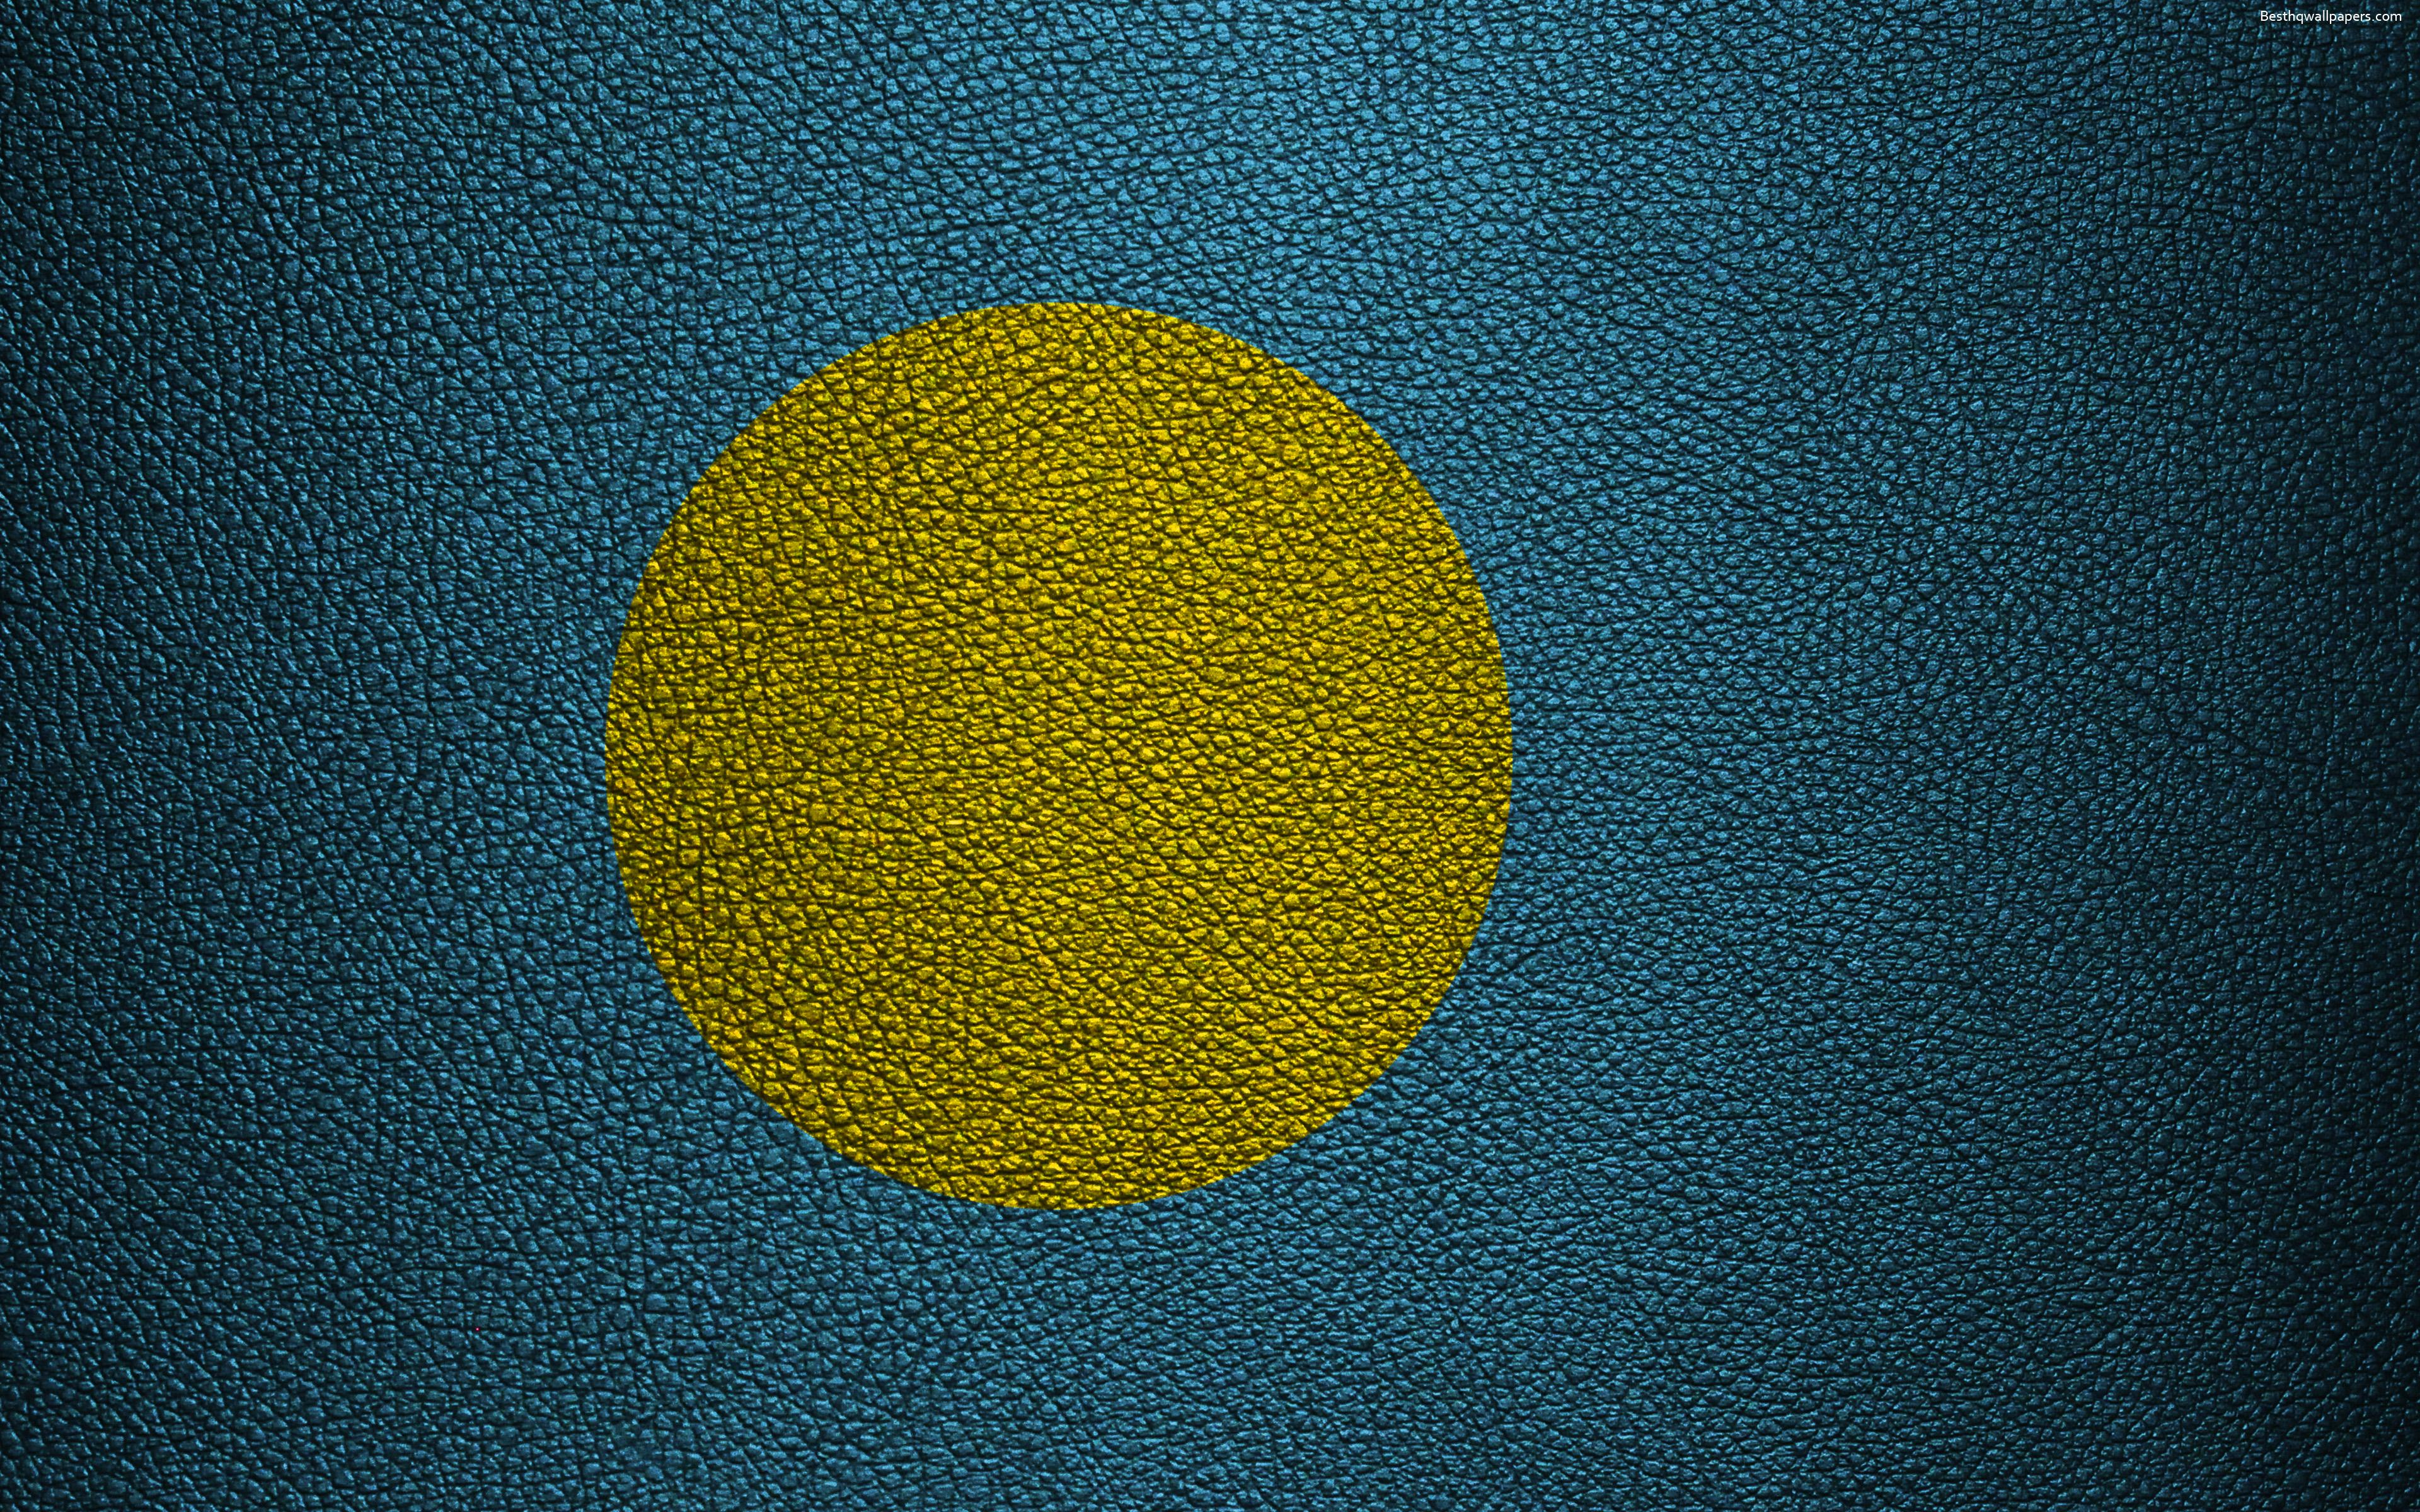 Download wallpapers Flag of Palau, 4k, leather texture, Oceania